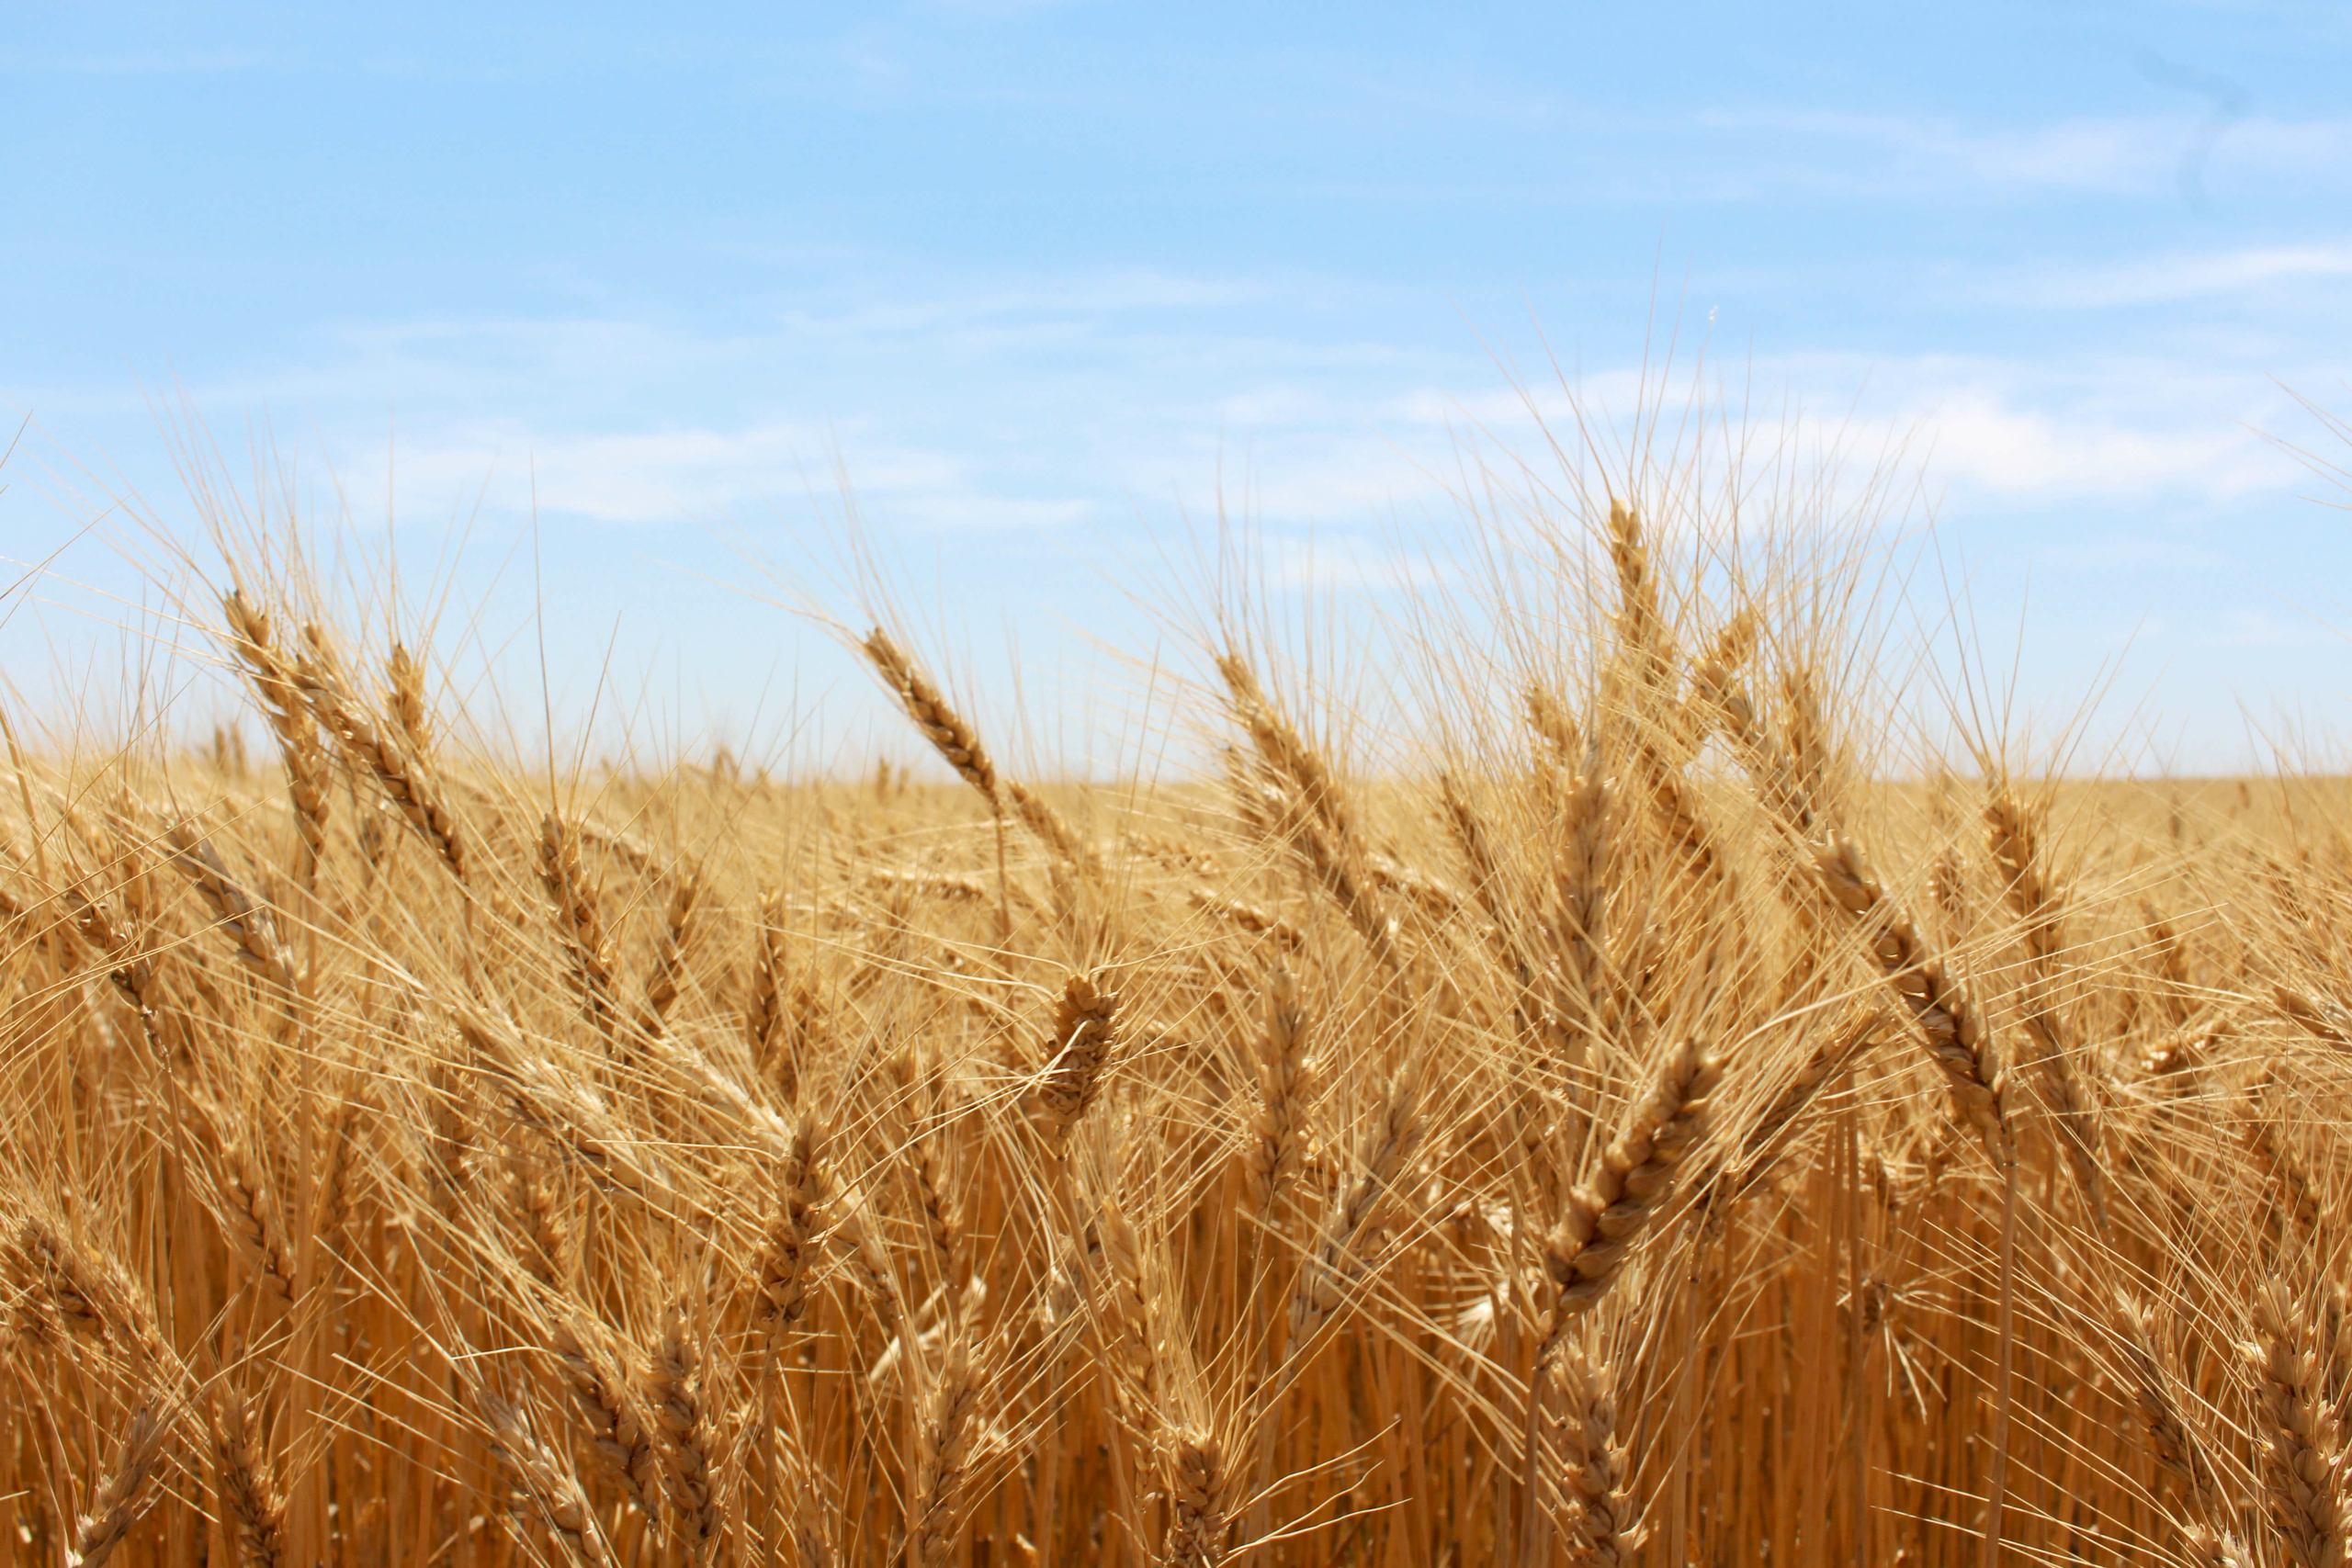 Image of wheat field to illustrate report on global wheat production